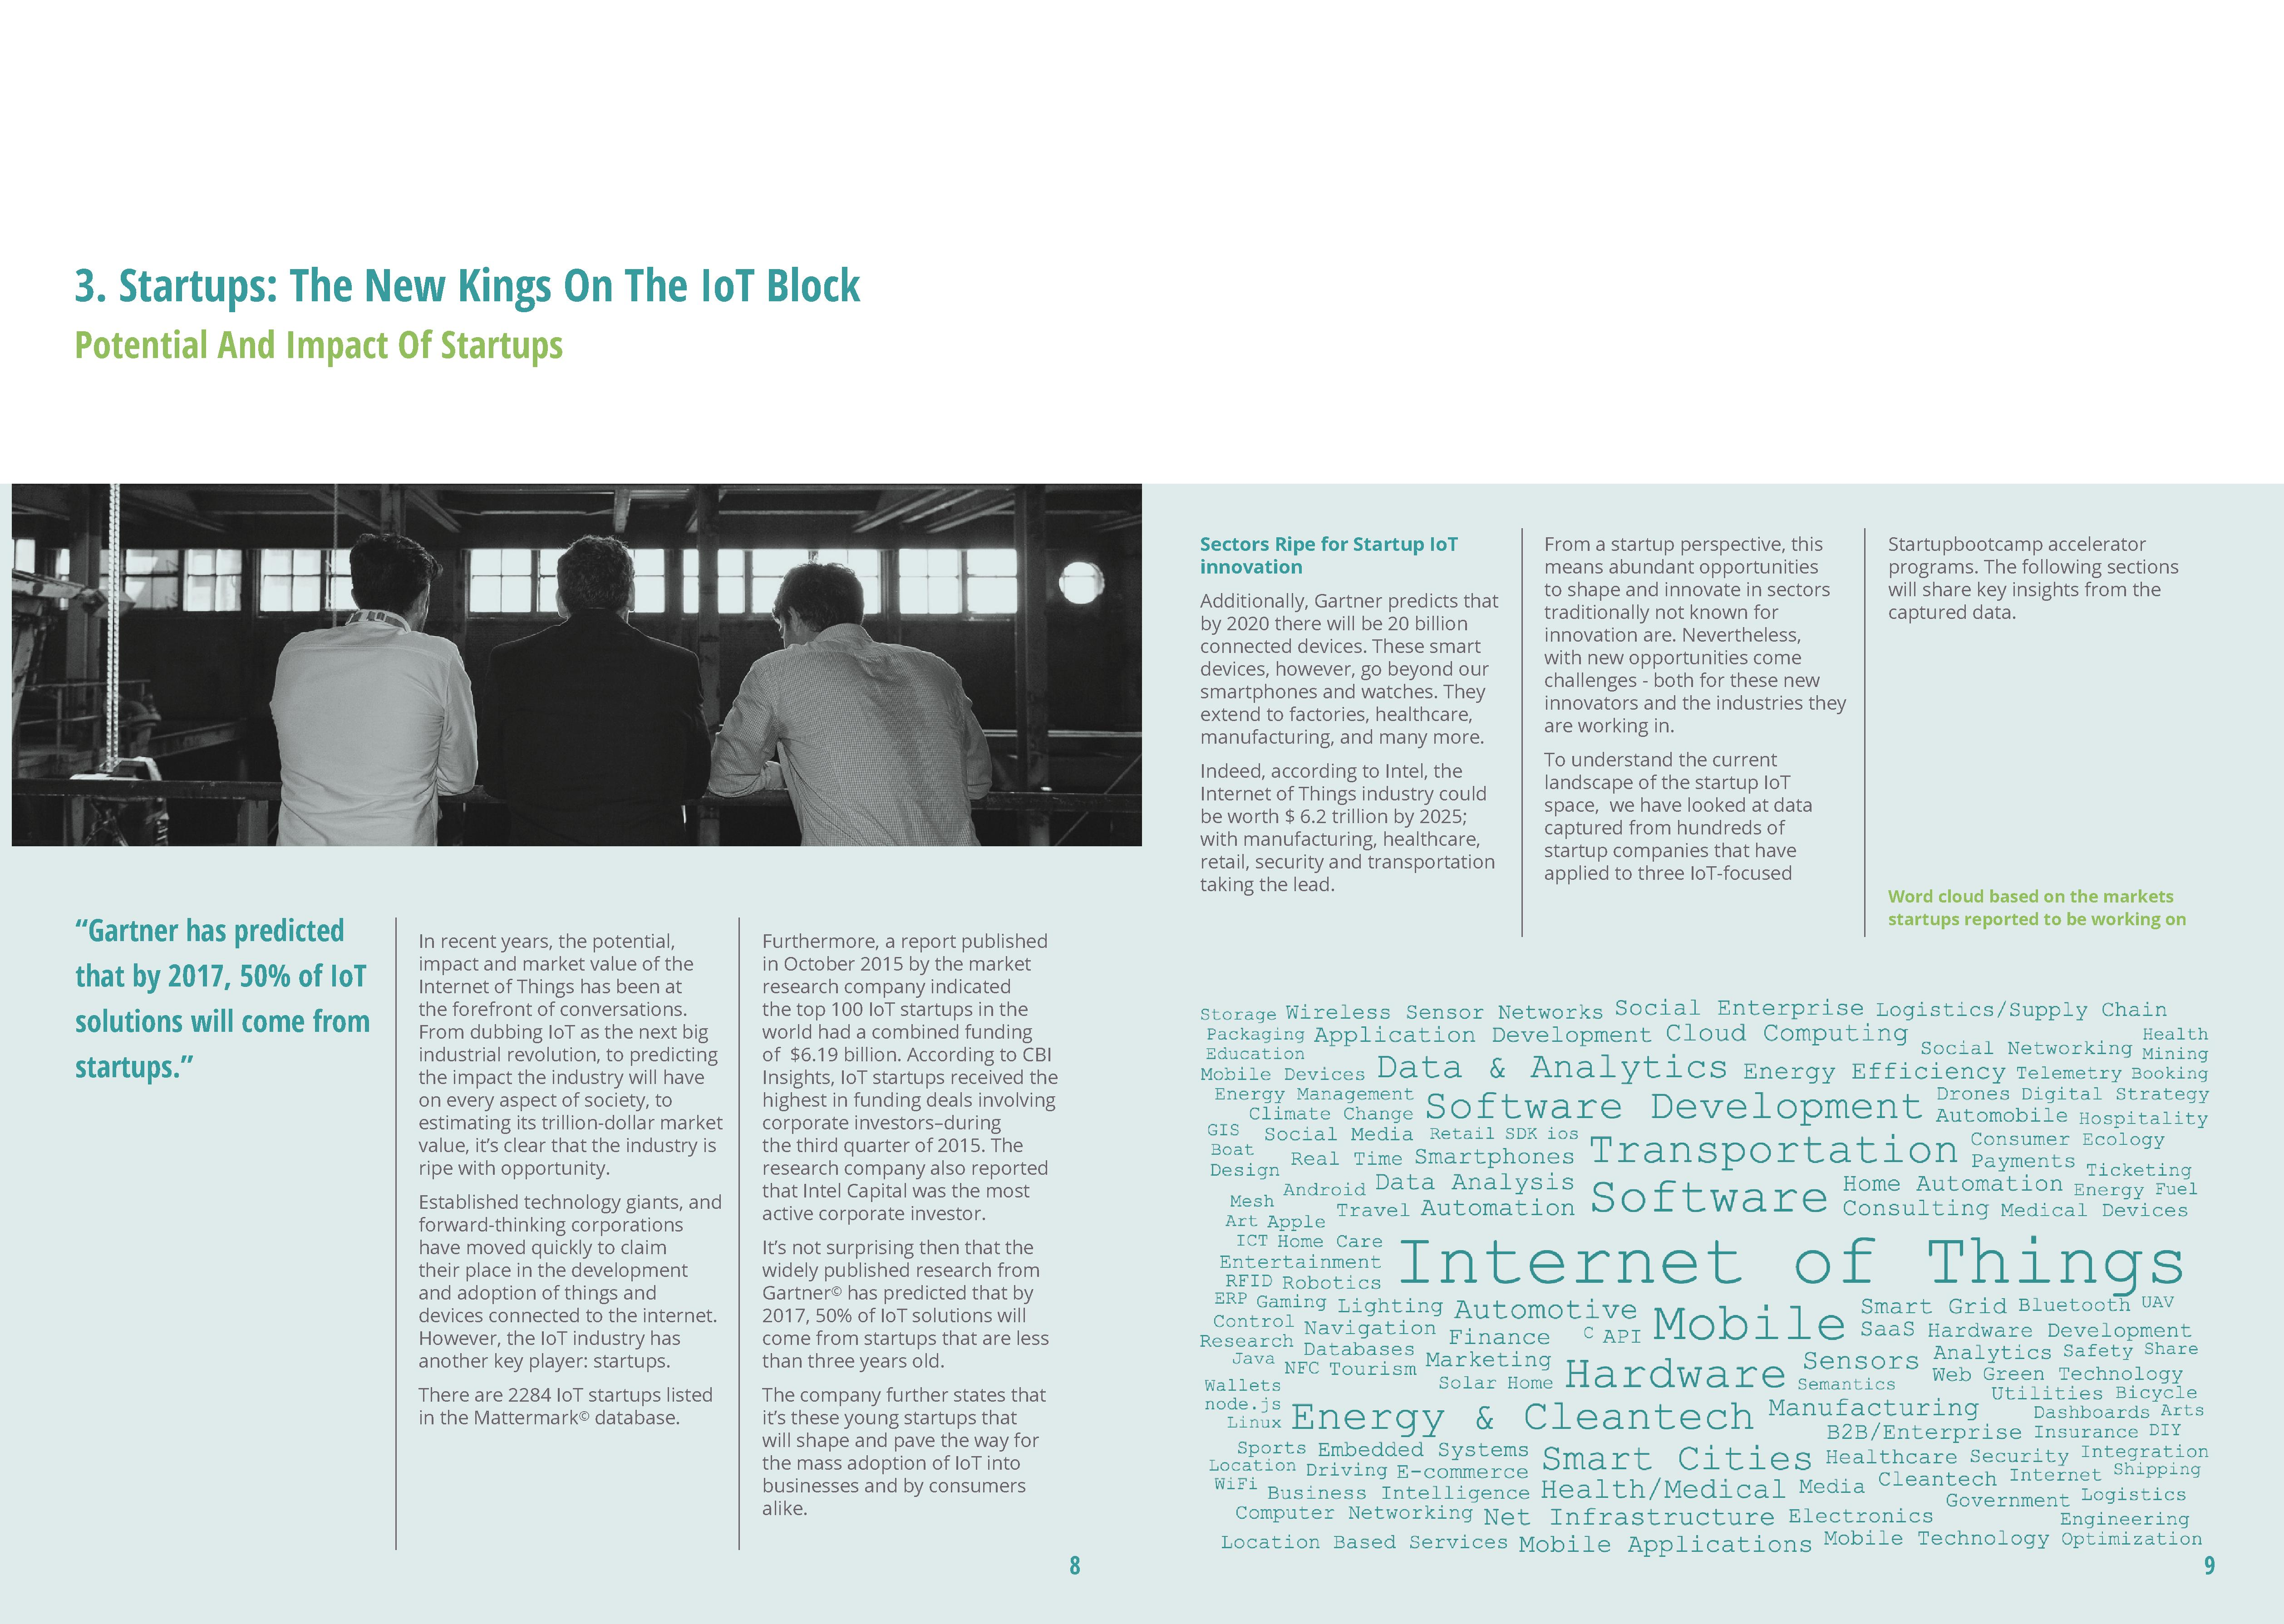 Startups: The New Kings On The IoT Block